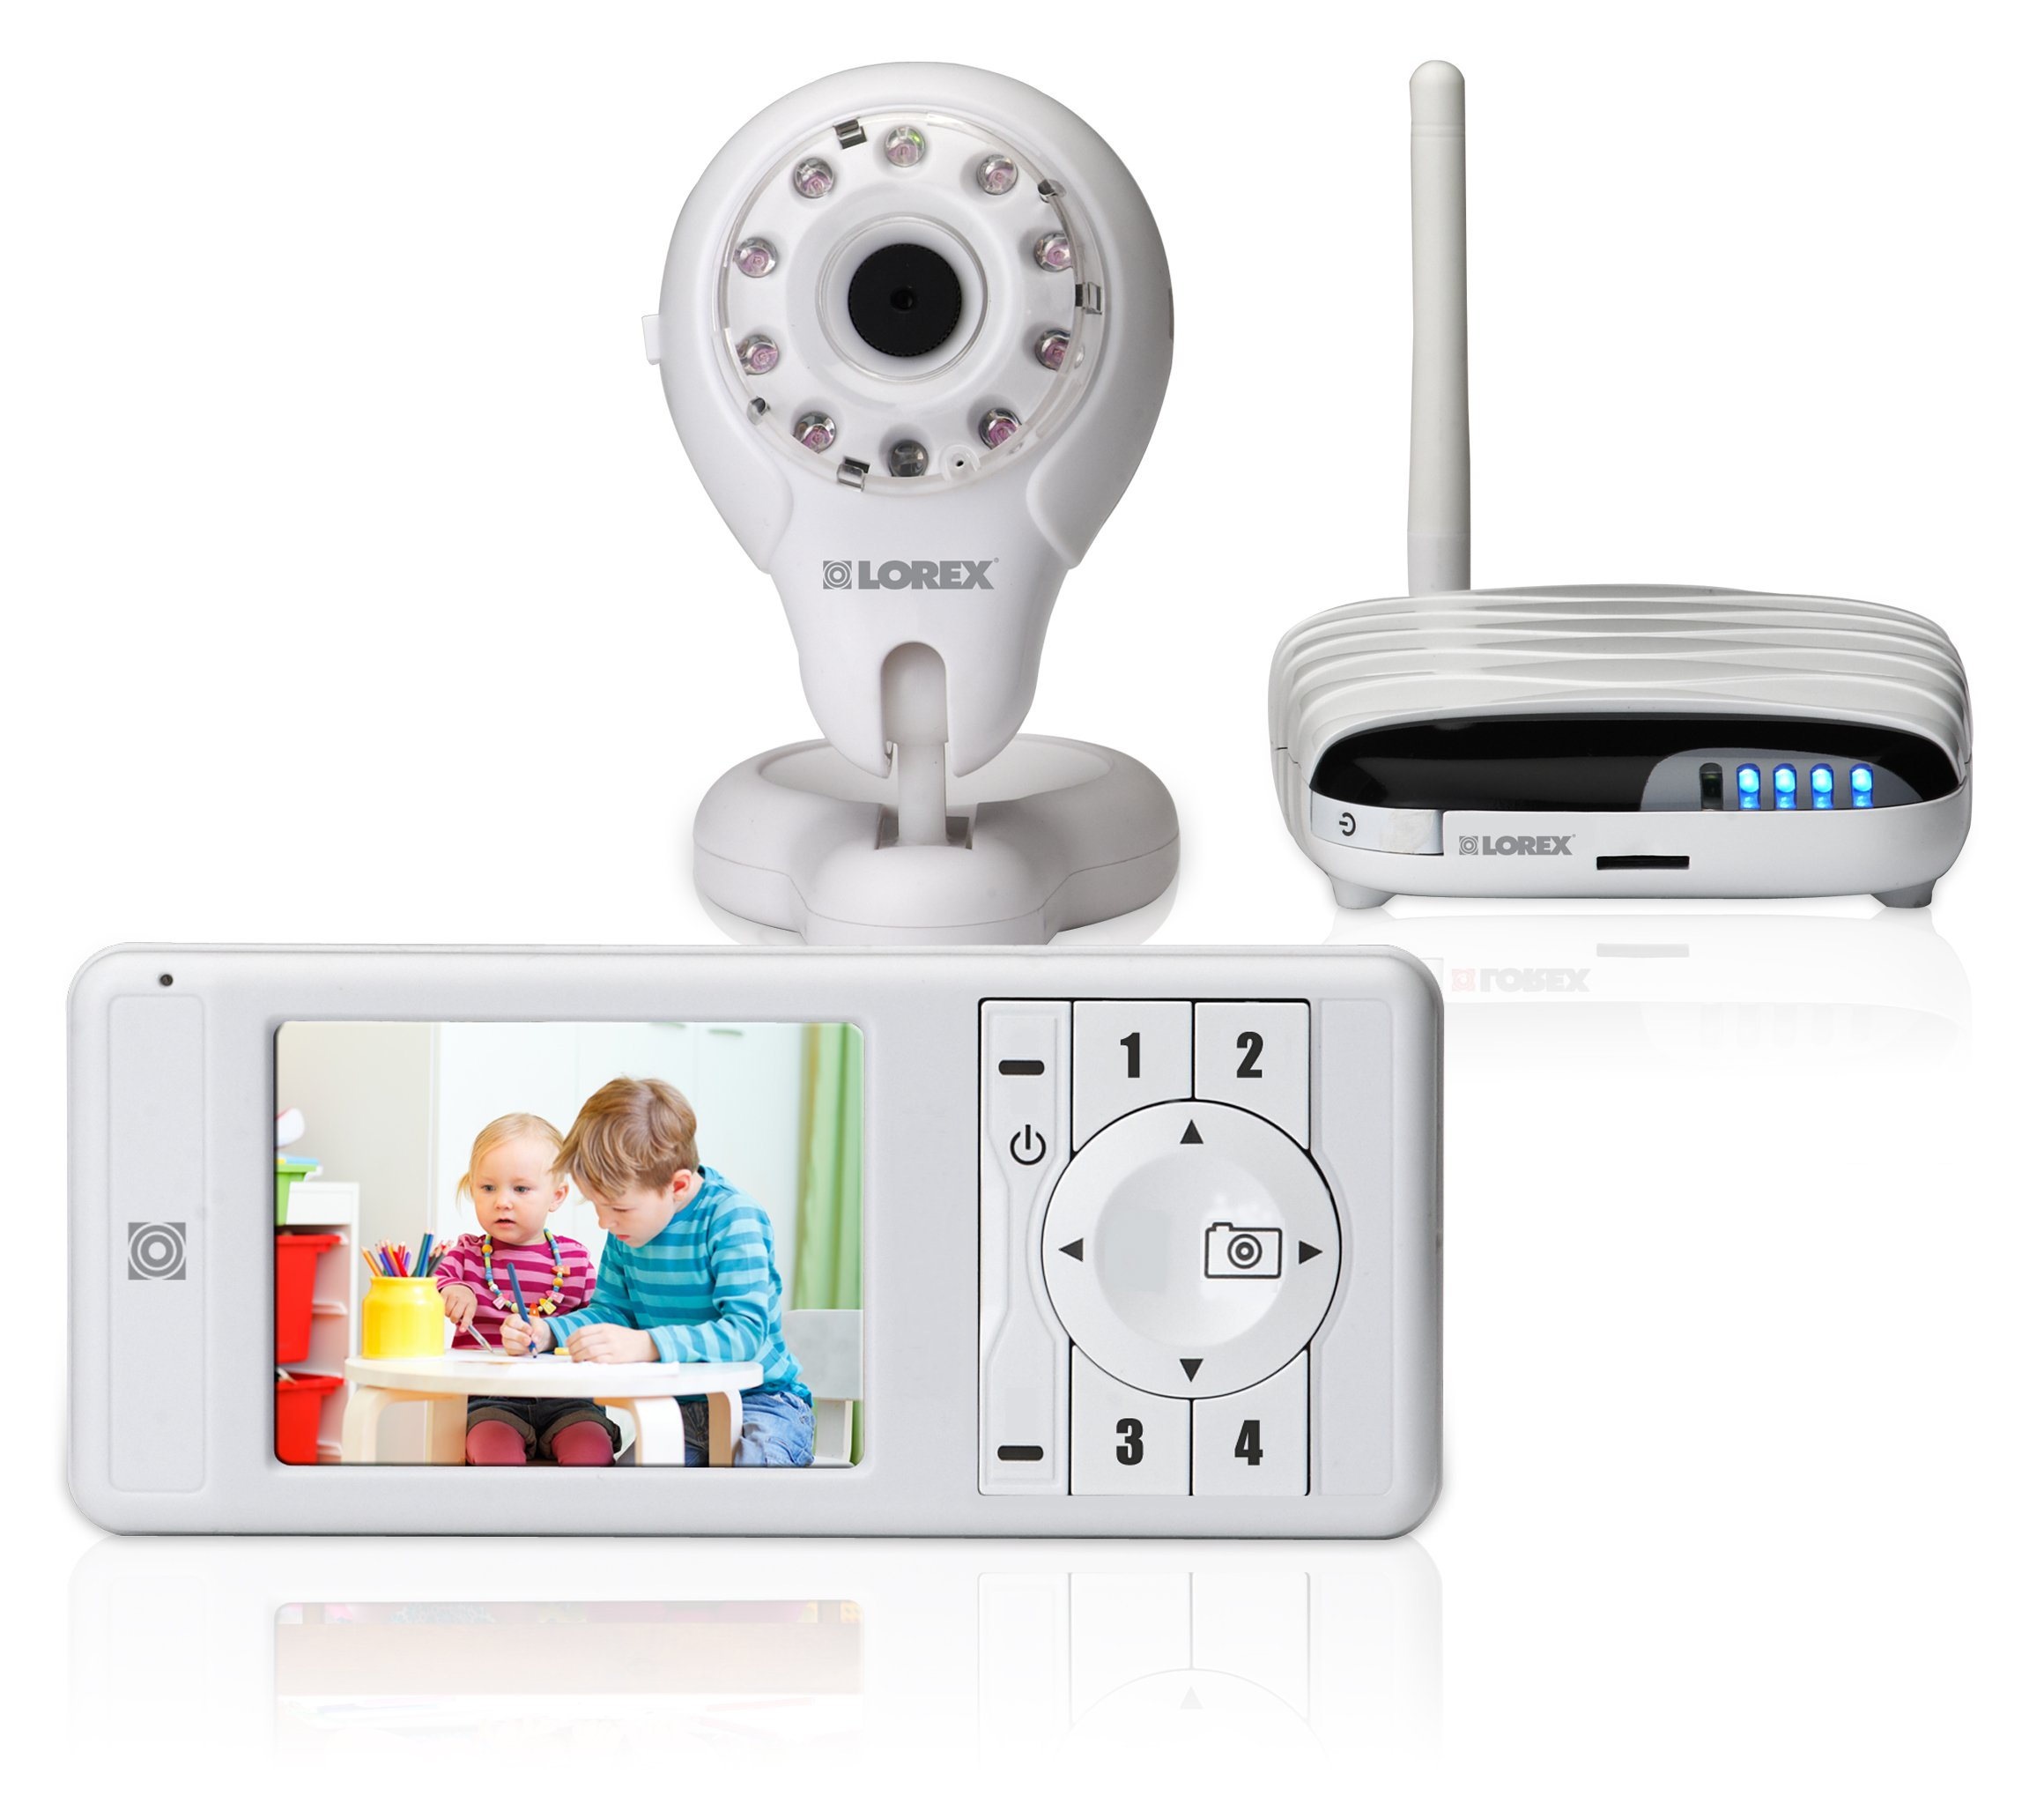 Lorex LW2031 LIVE connect Wireless Video Monitor with Skype by Lorex